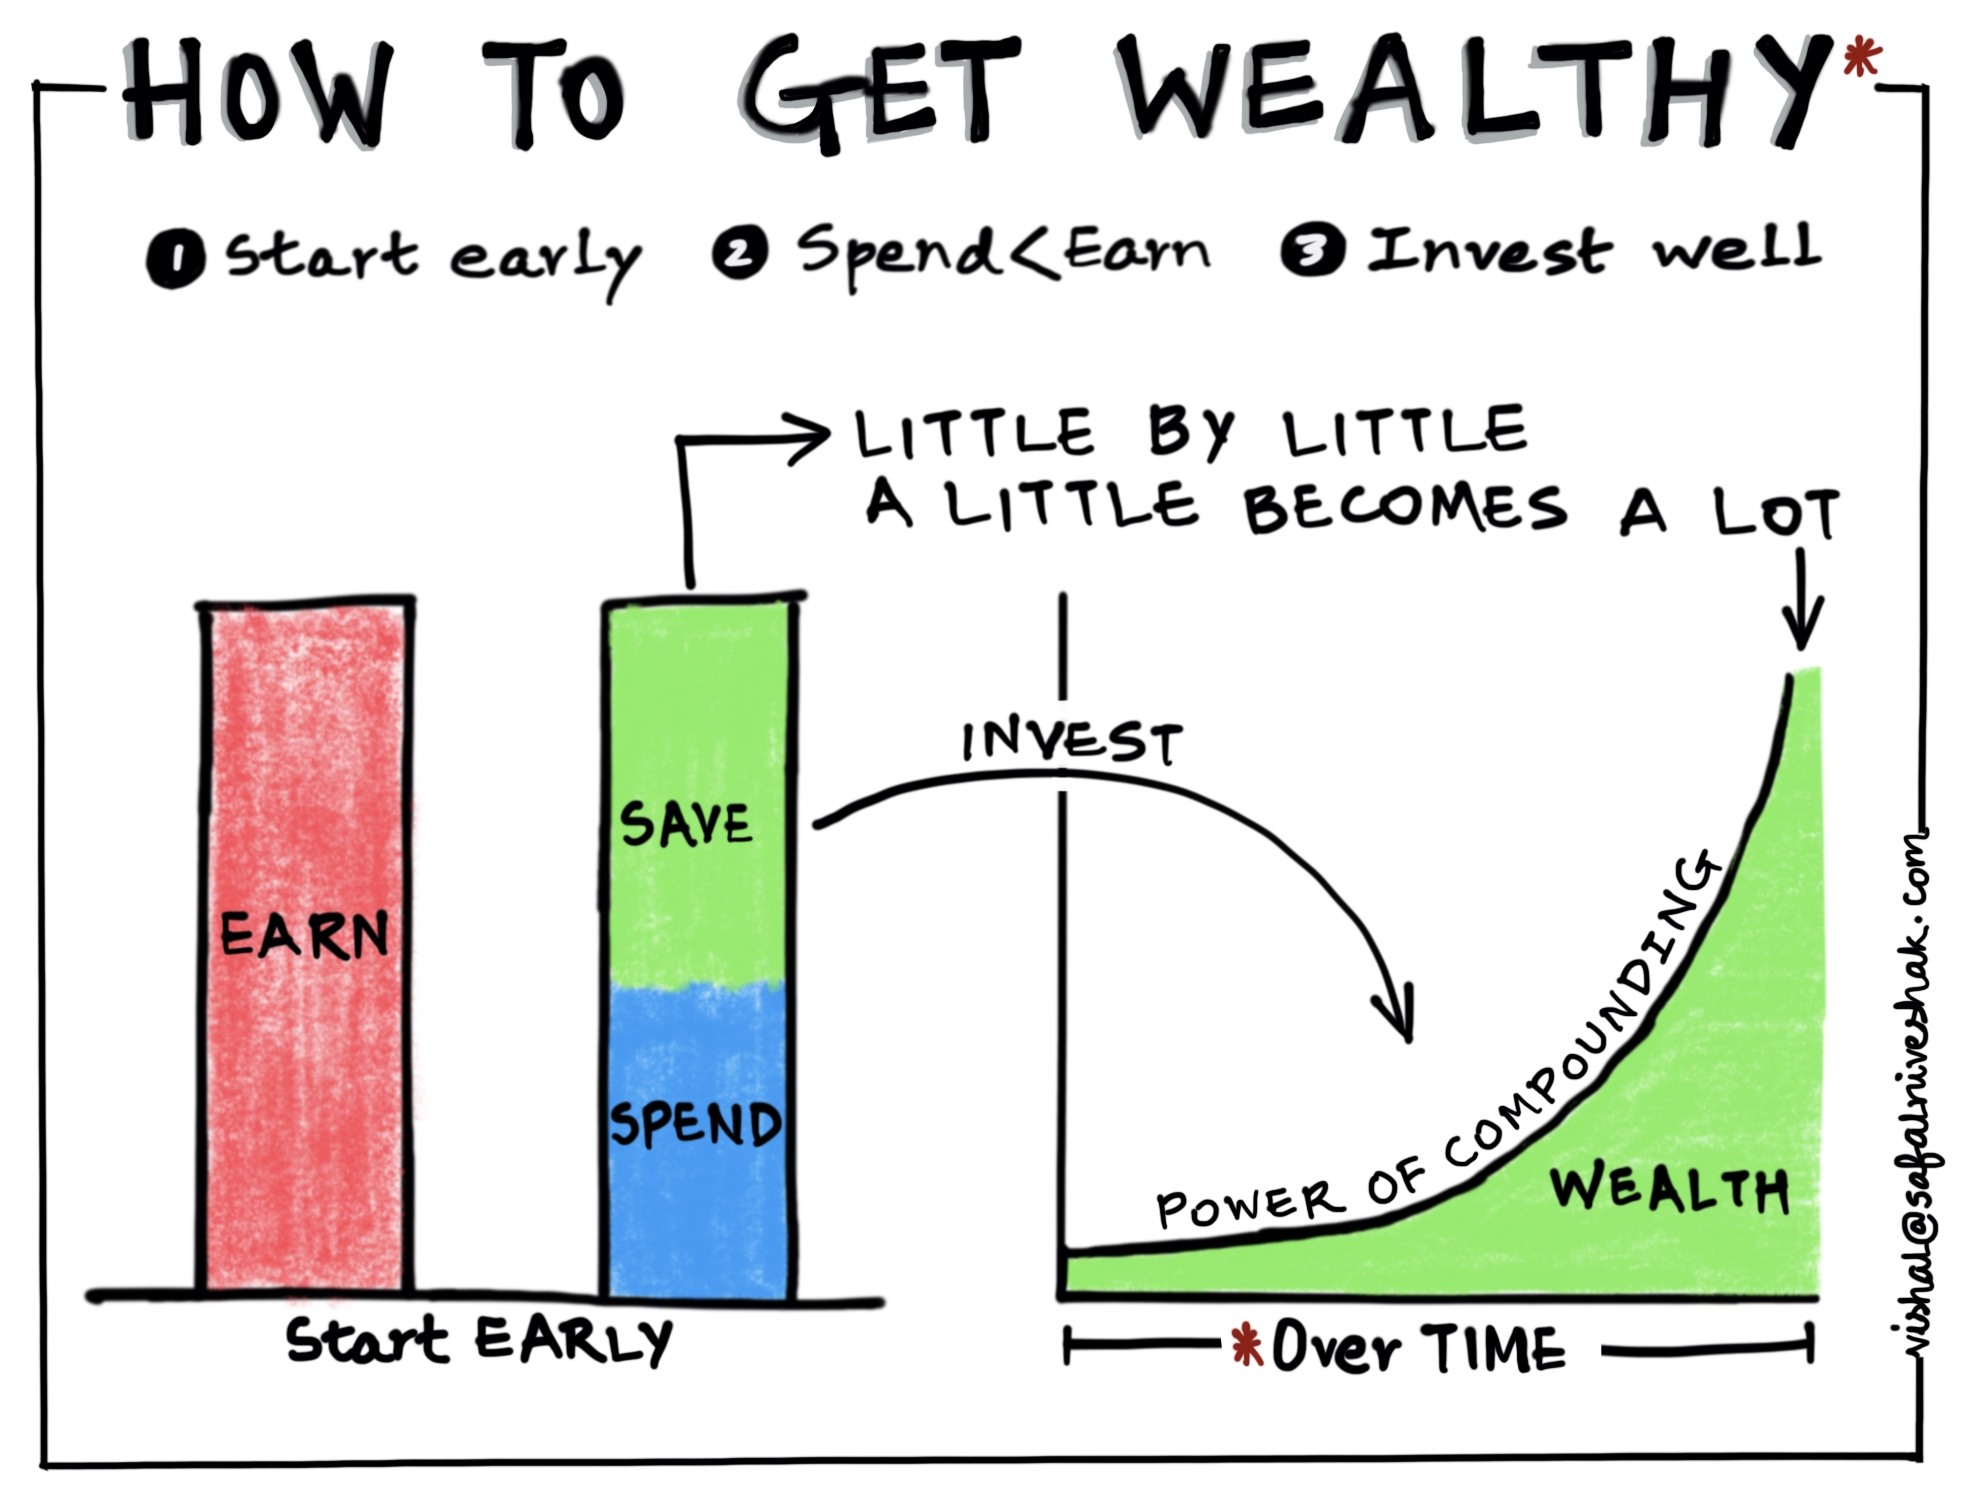 How to Get Wealthy